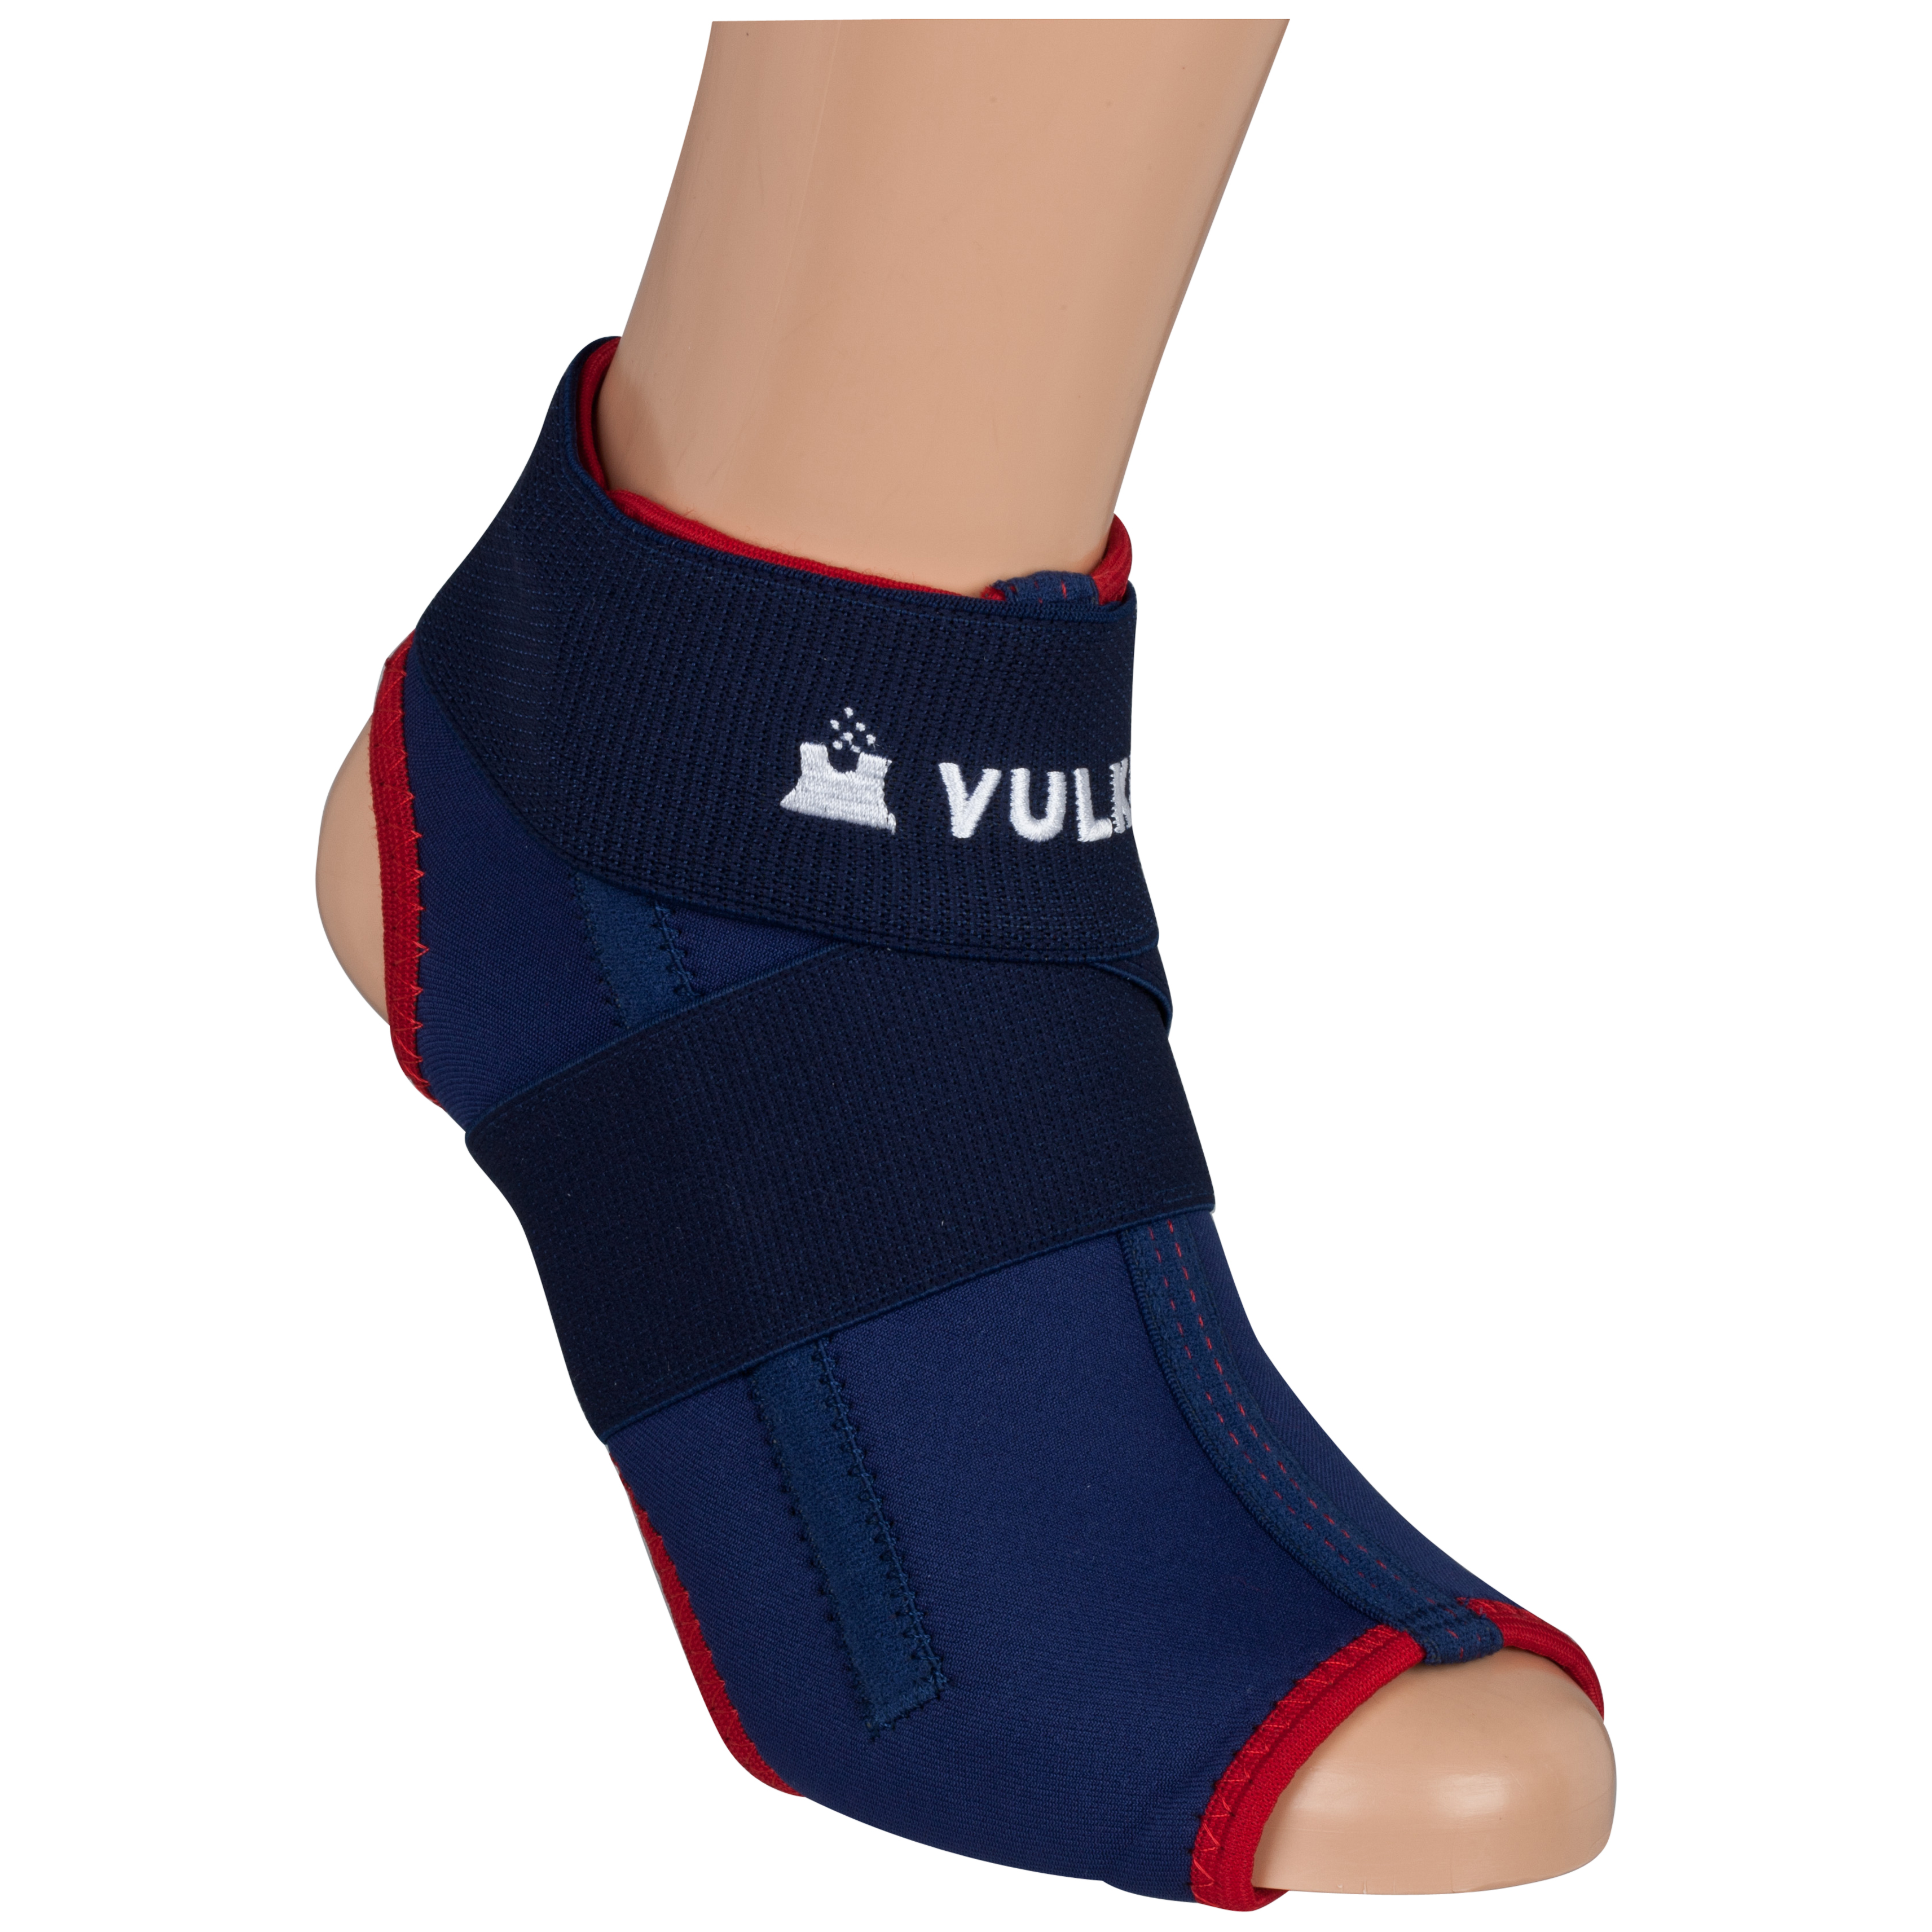 Vulkan Ankle Brace (Right) - Blue/Red